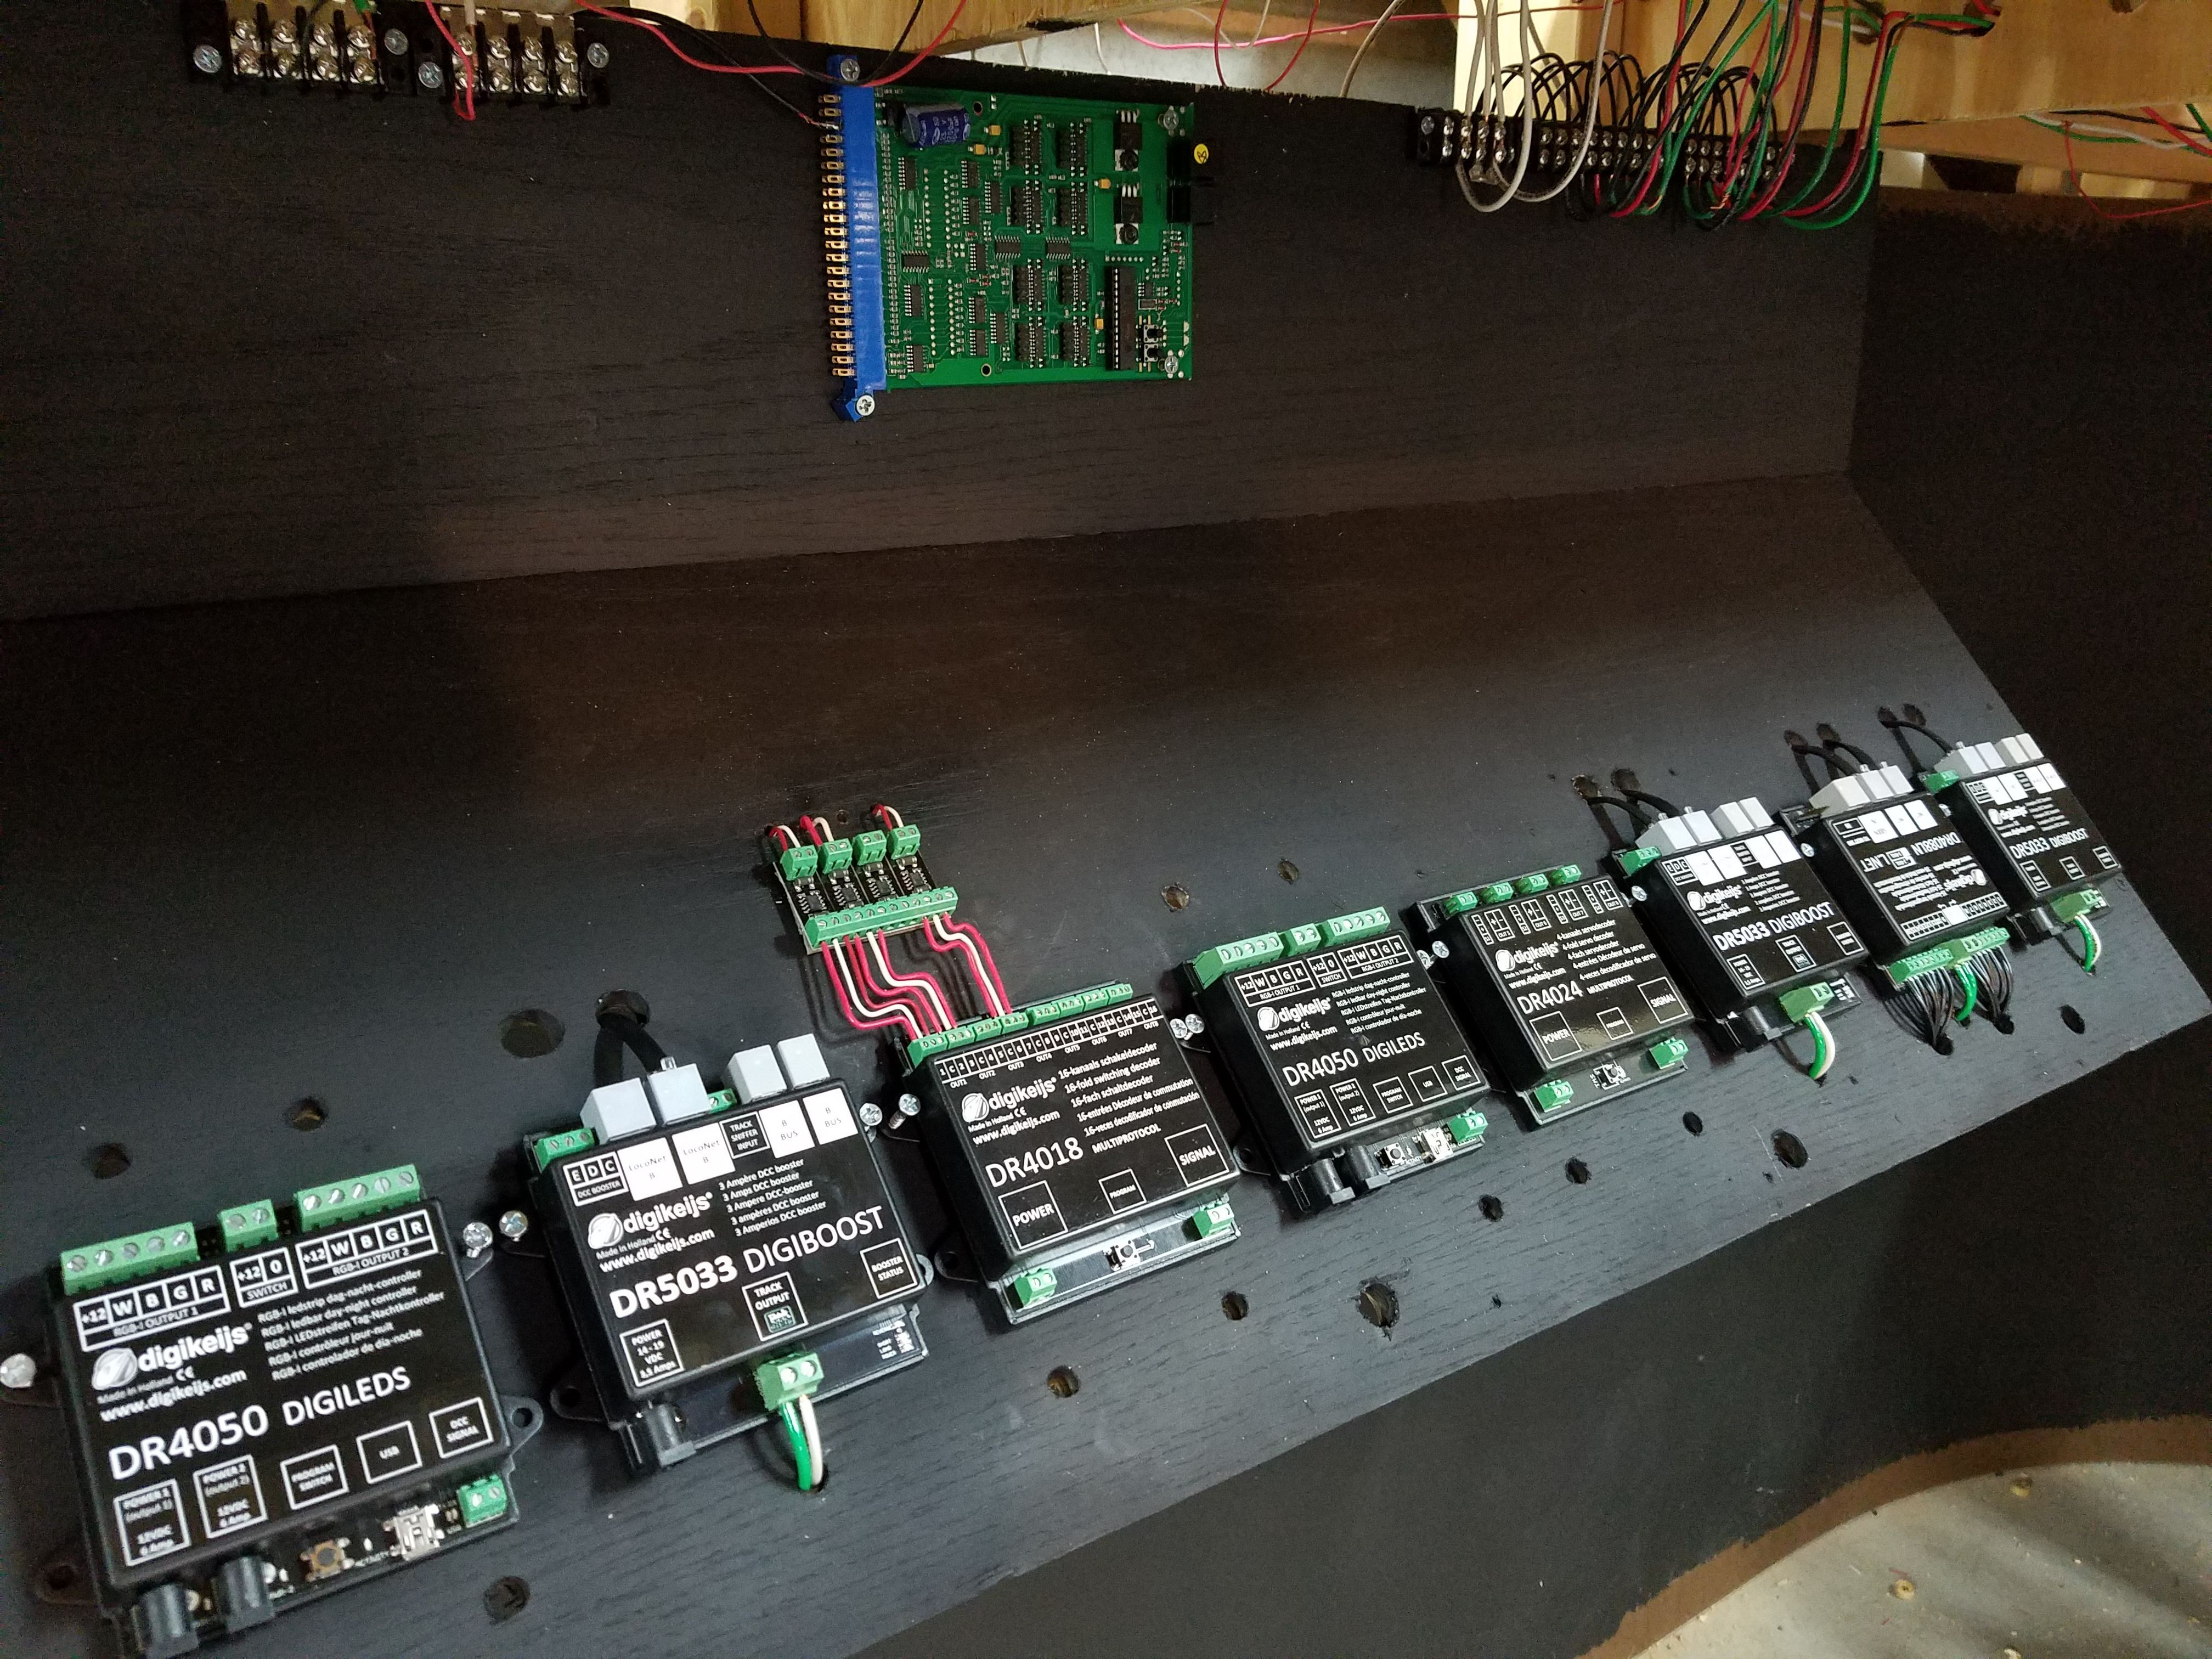 loconet wiring diagrams wiring library Wiring House Home digikeijs loconet compatible boosters, switch decoders, signal decoders, servo decoders, occupancy detection